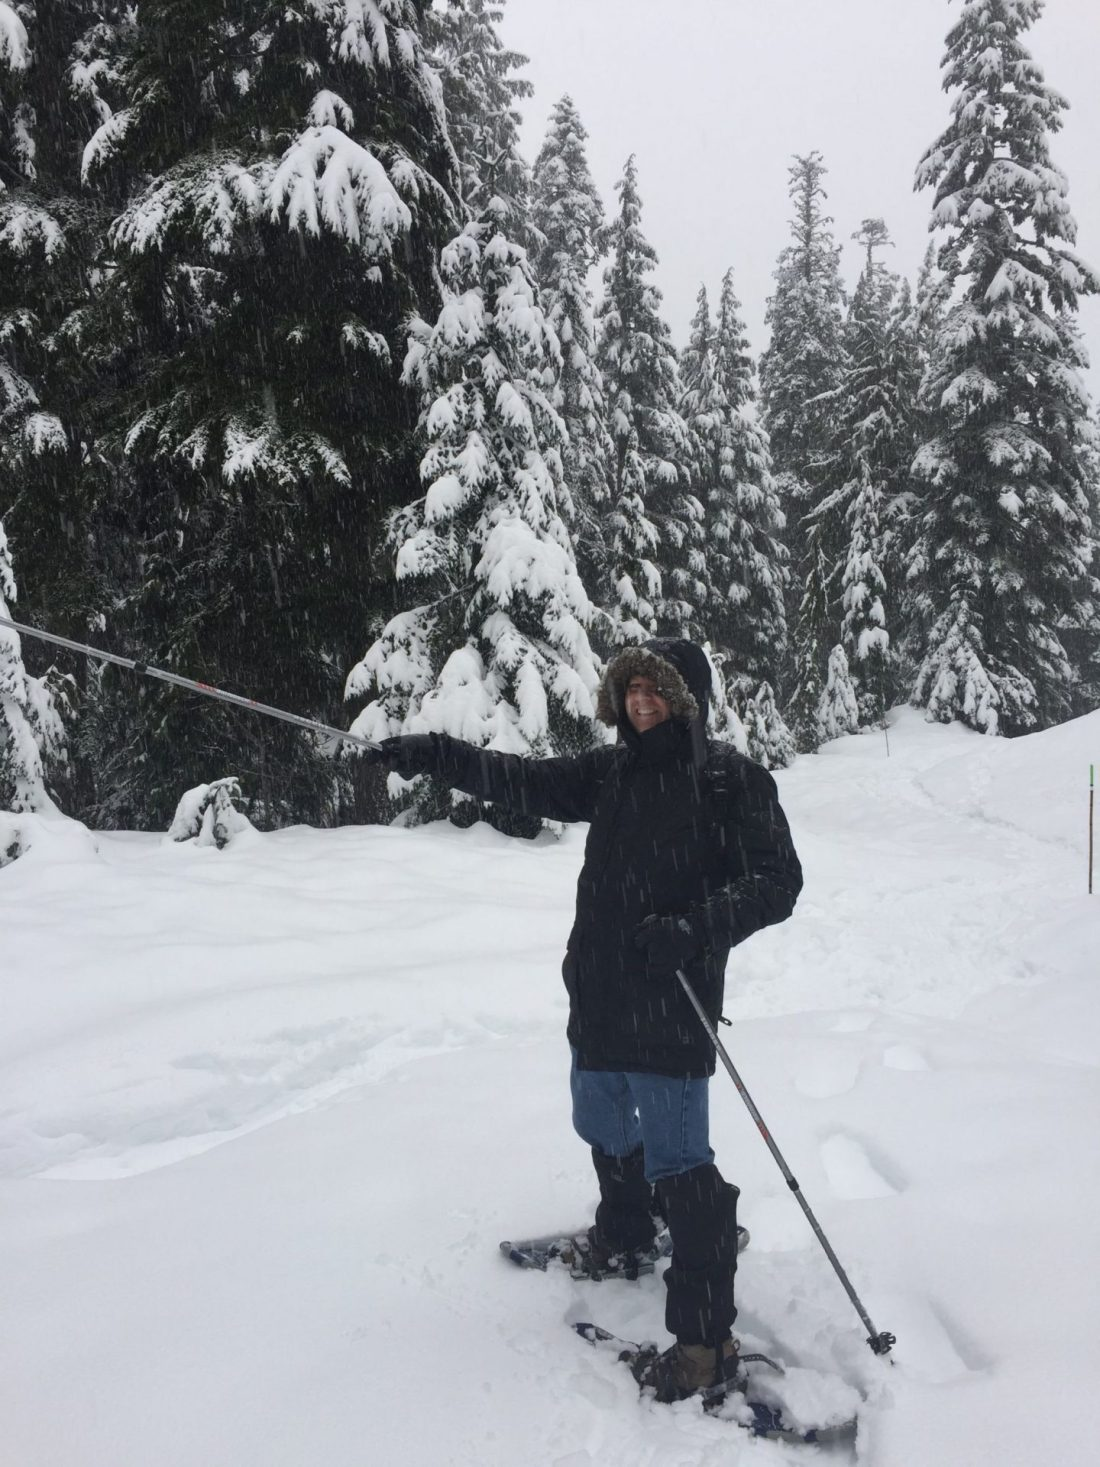 Dad on the snowshoeing trail on Mount Seymour, Vancouver